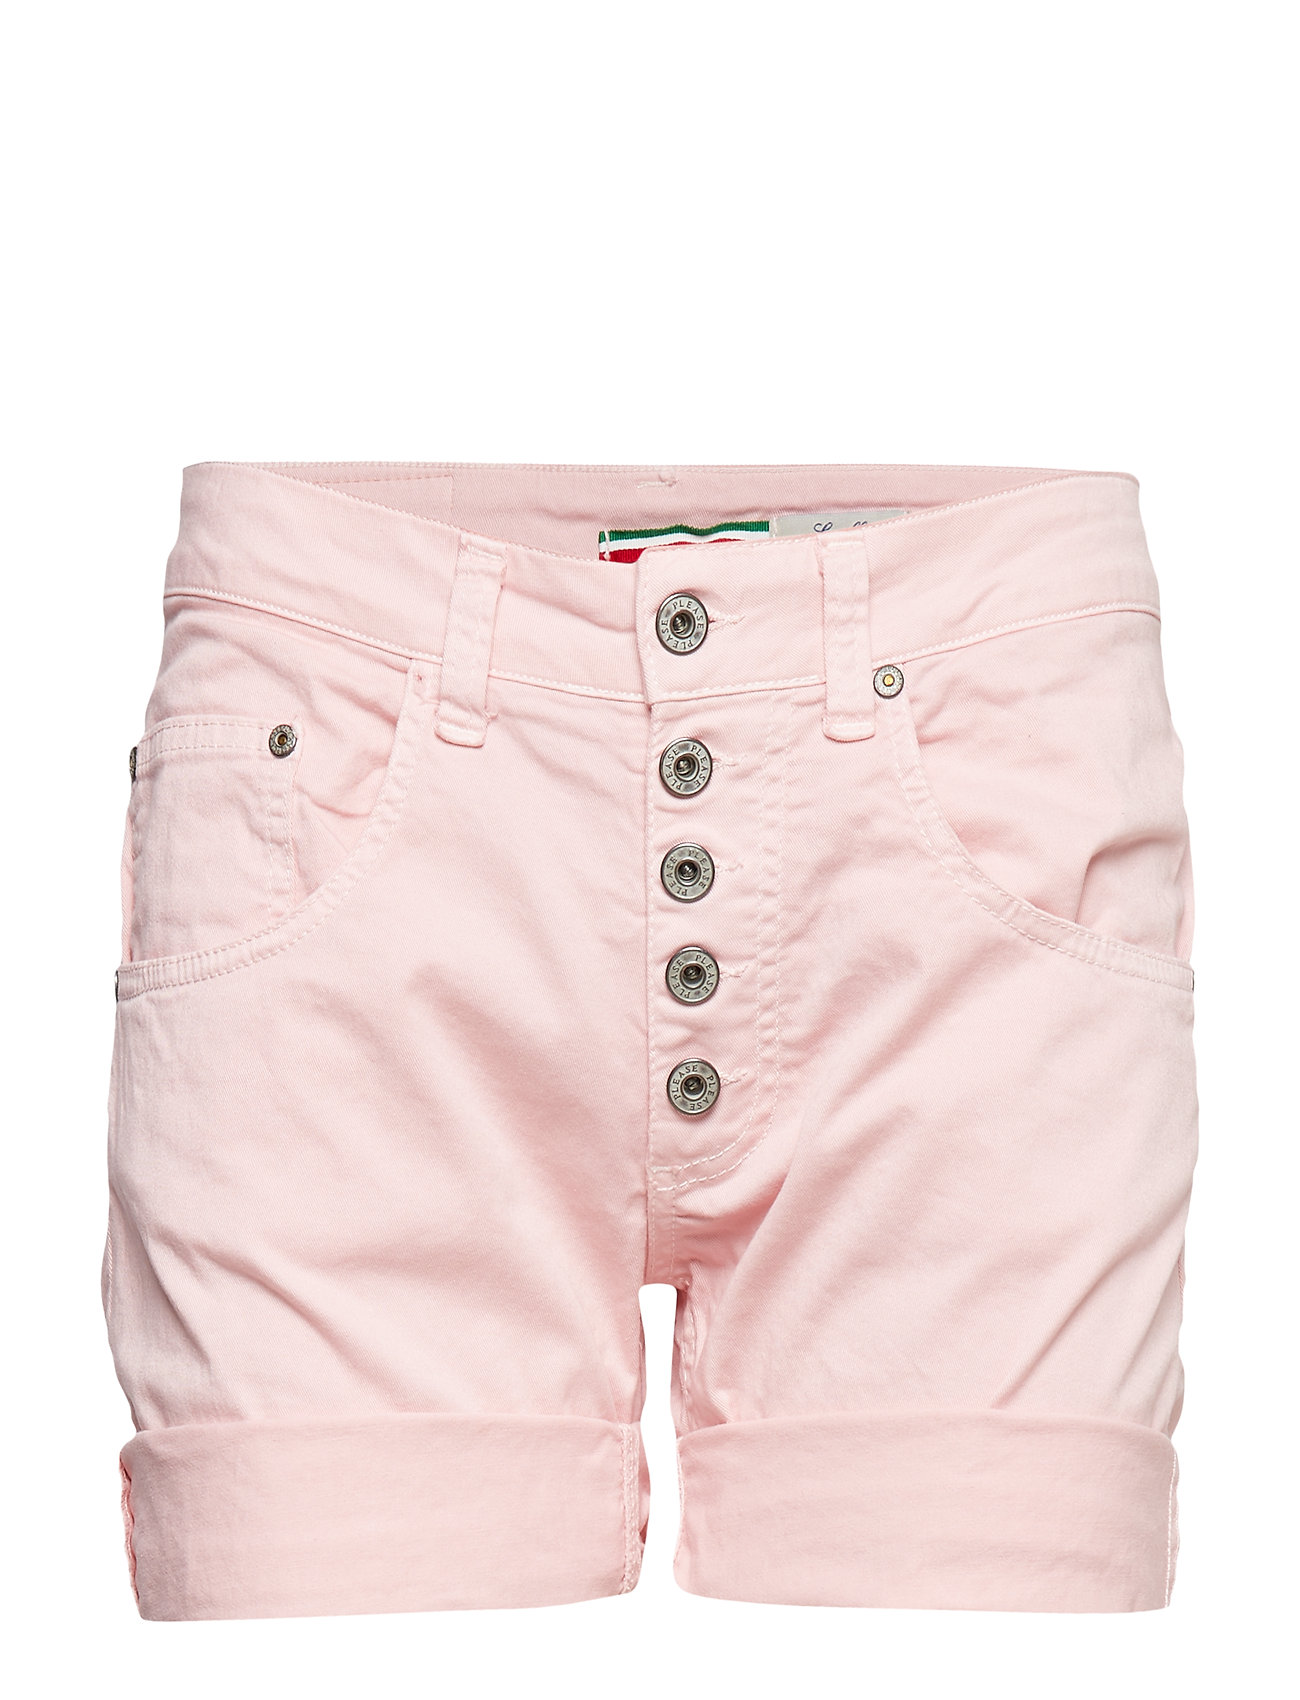 Please Jeans 5B SHORTS COTTON Shorts